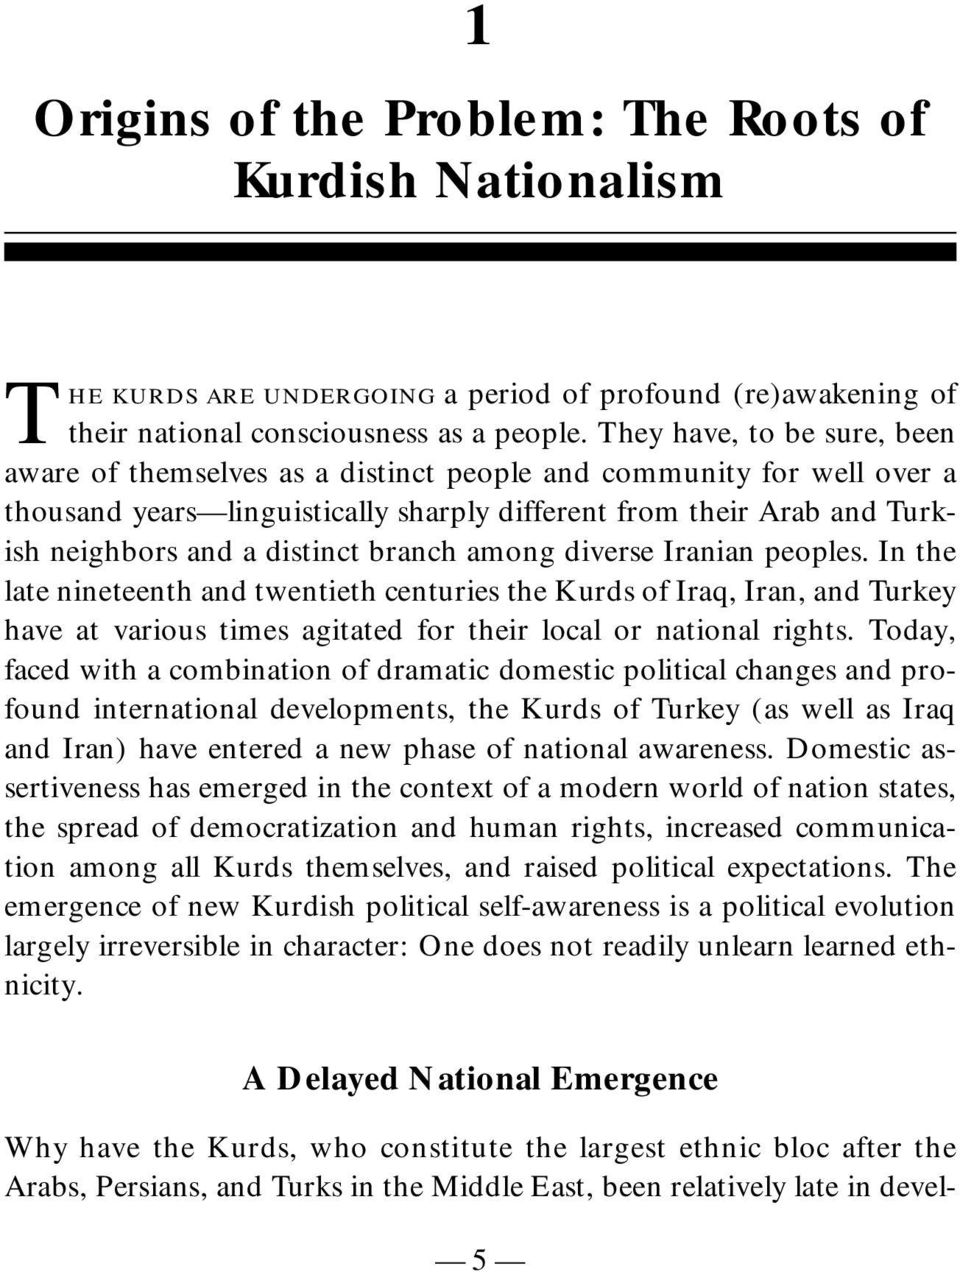 branch among diverse Iranian peoples. In the late nineteenth and twentieth centuries the Kurds of Iraq, Iran, and Turkey have at various times agitated for their local or national rights.